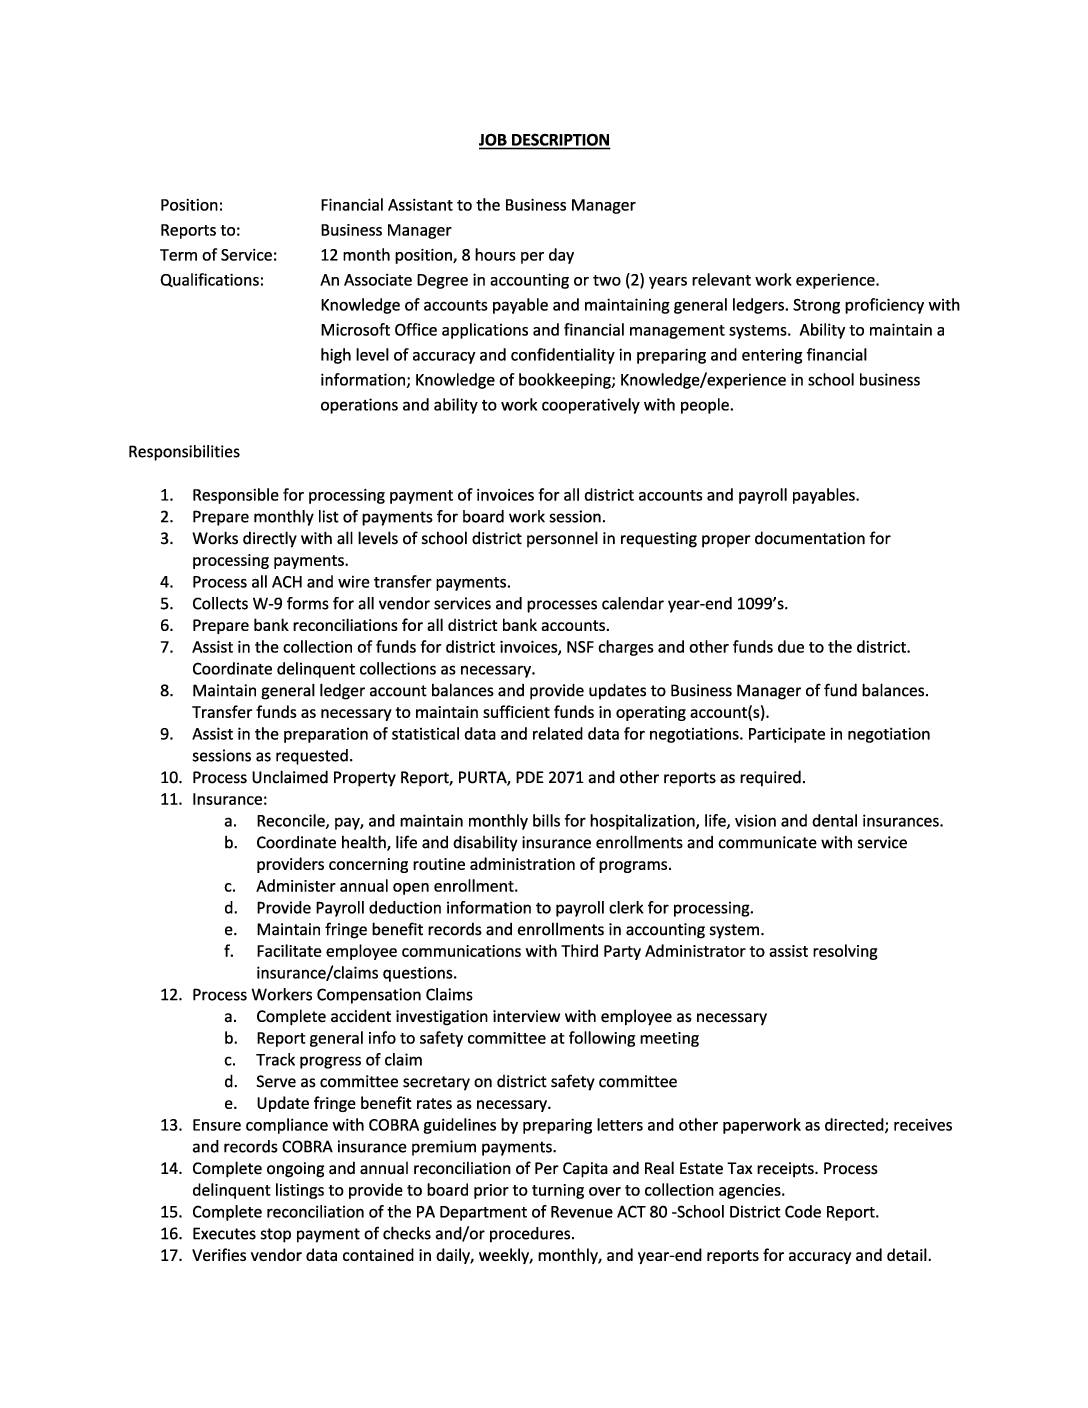 Financial Assistant Job Description Huntingdon Area School District